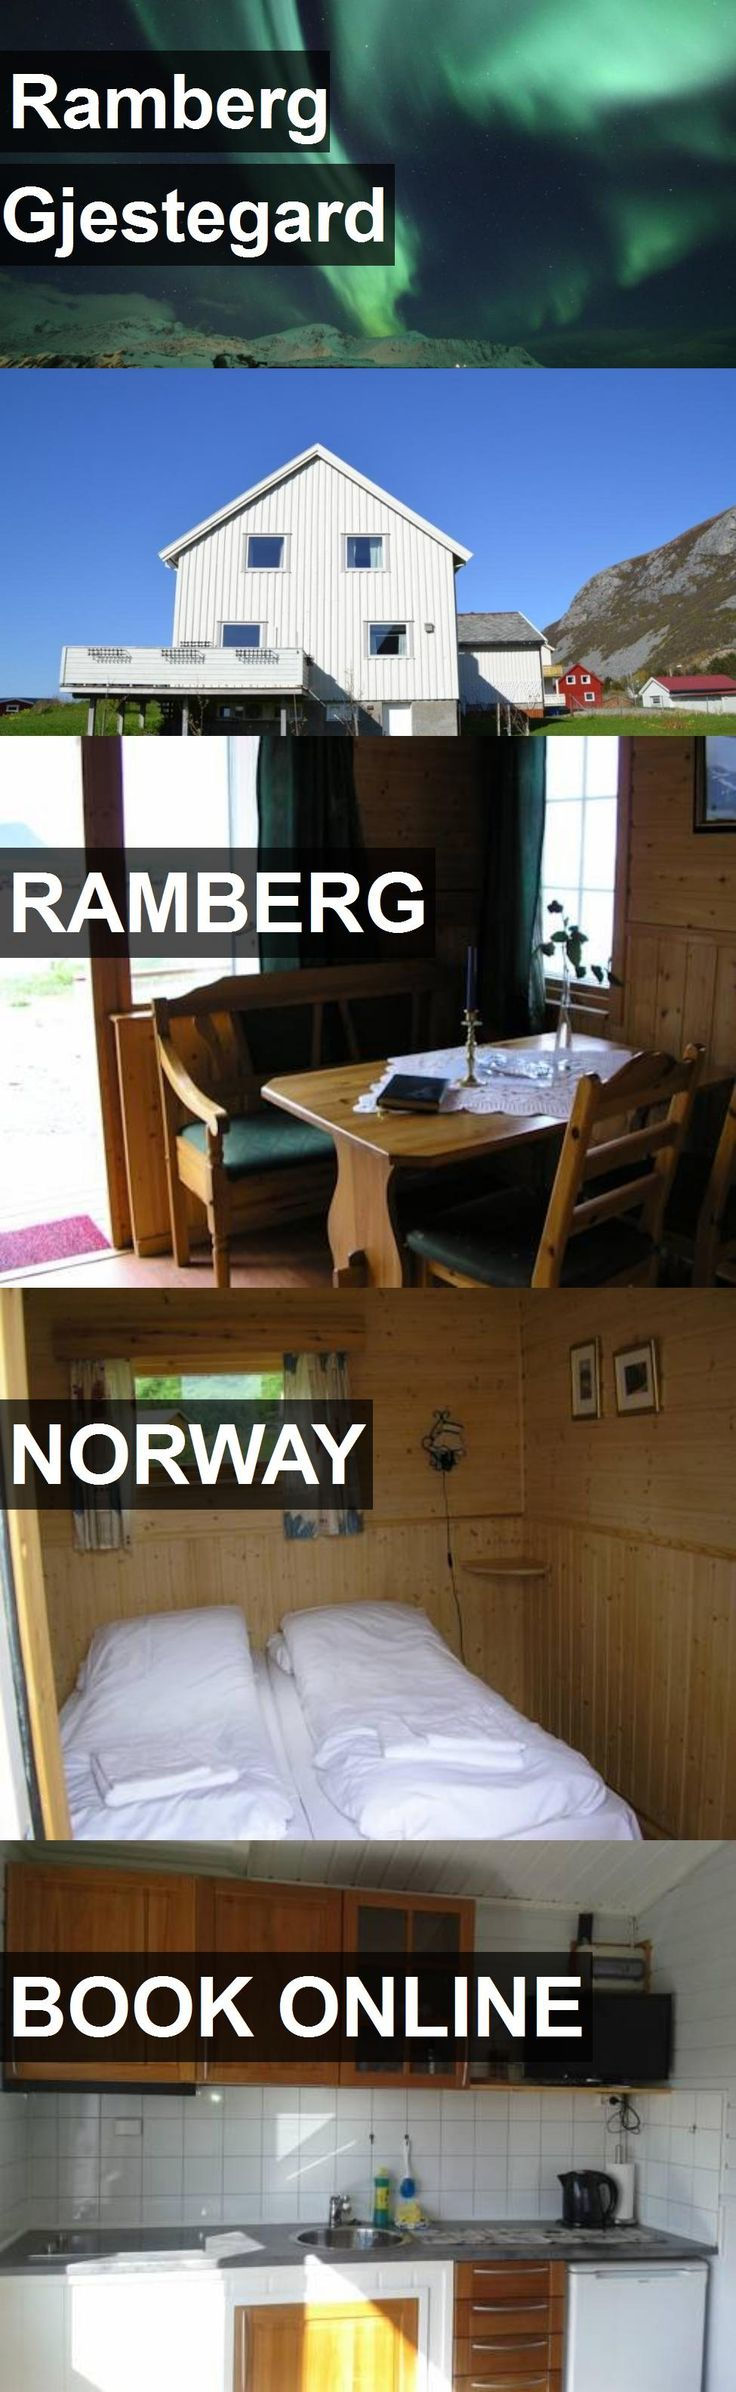 Hotel Ramberg Gjestegard in Ramberg, Norway. For more information, photos, reviews and best prices please follow the link. #Norway #Ramberg #travel #vacation #hotel